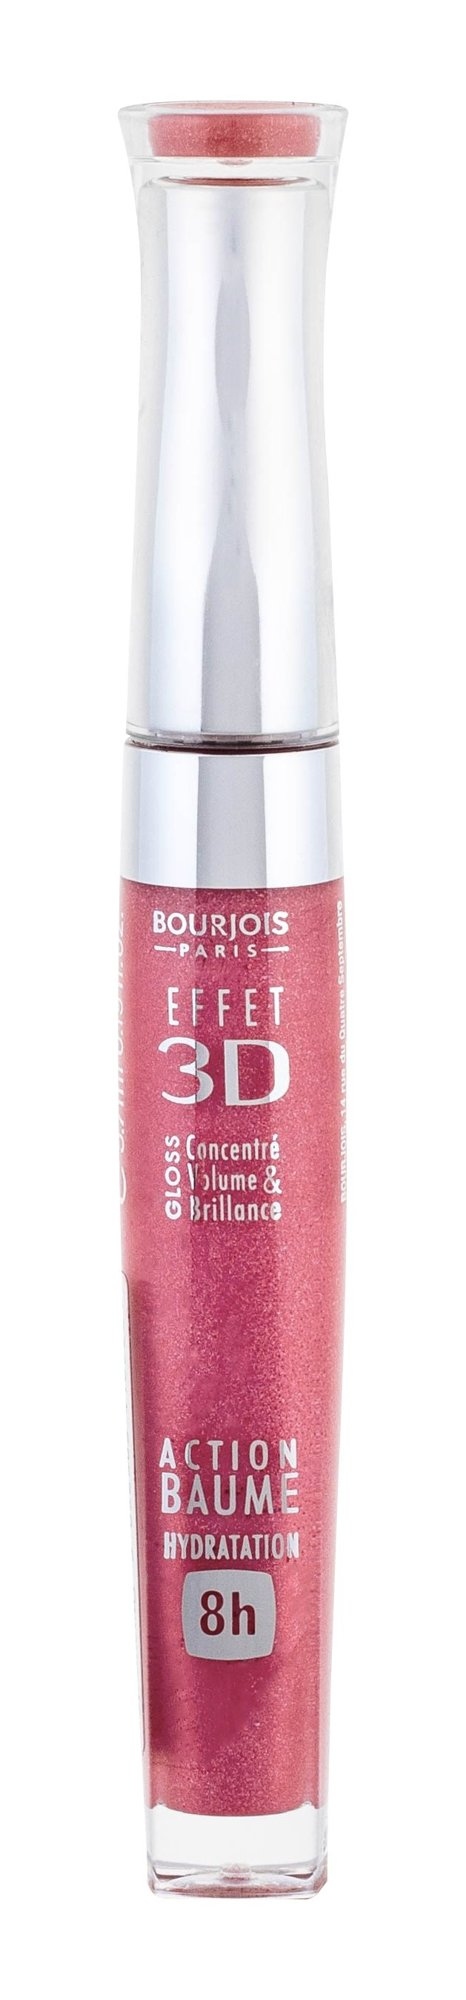 BOURJOIS Paris 3D Effet Cosmetic 5,7ml 03 Brown Pink